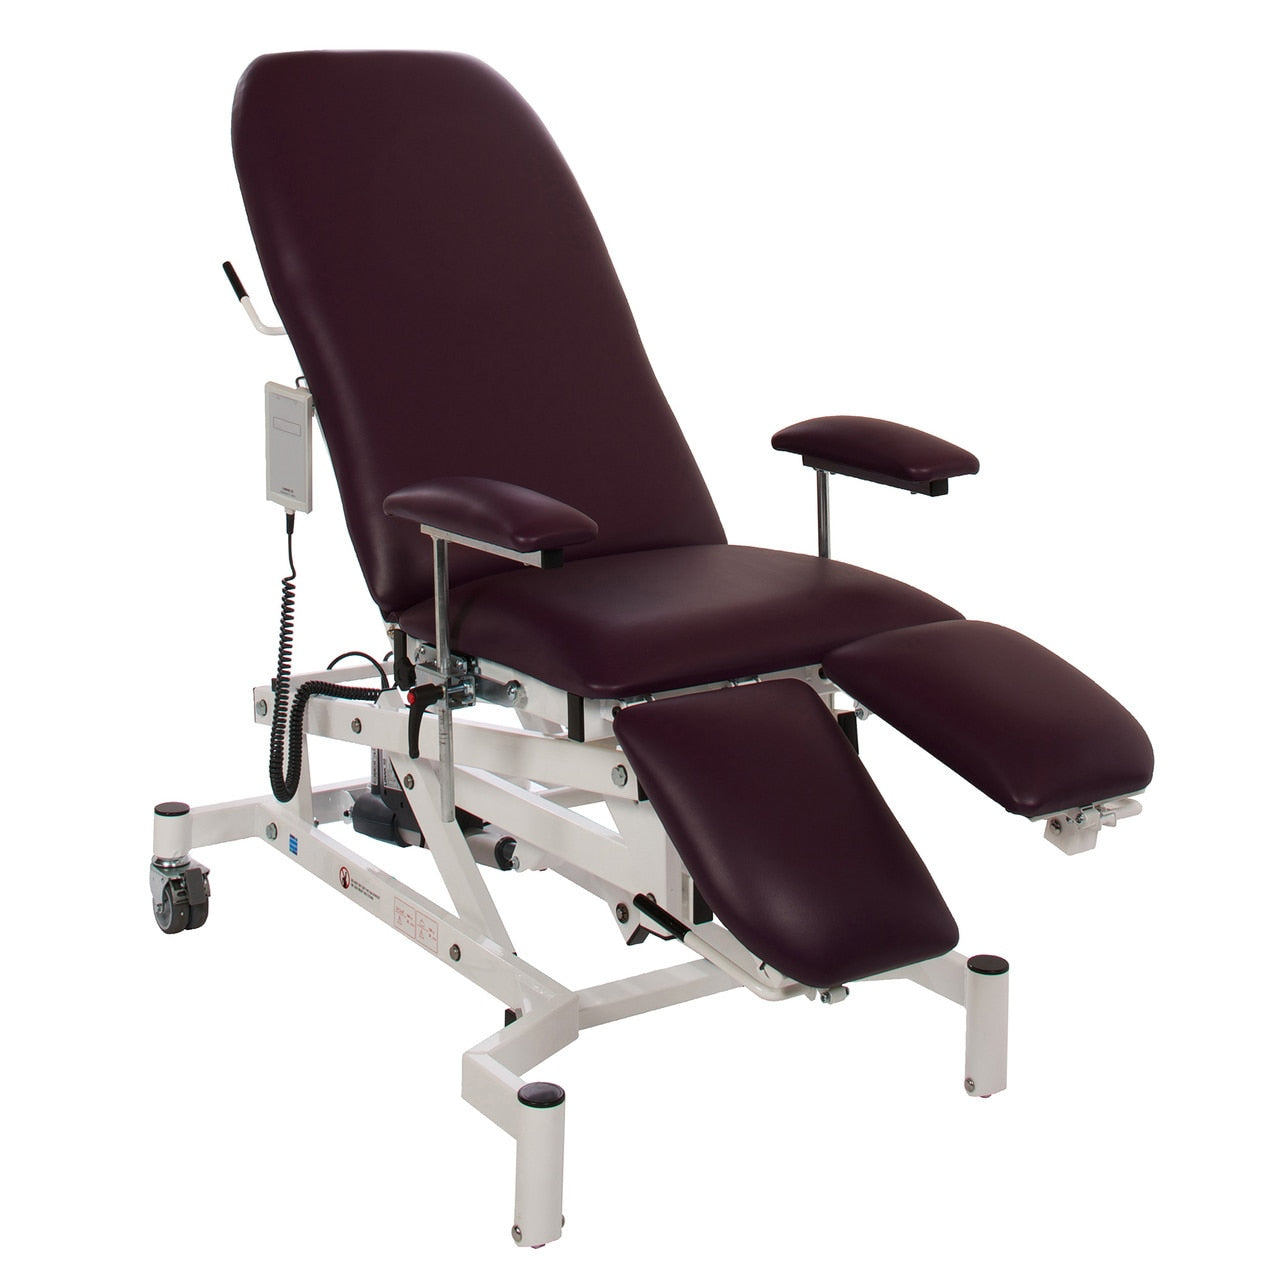 Doherty Variable Height Treatment Chair